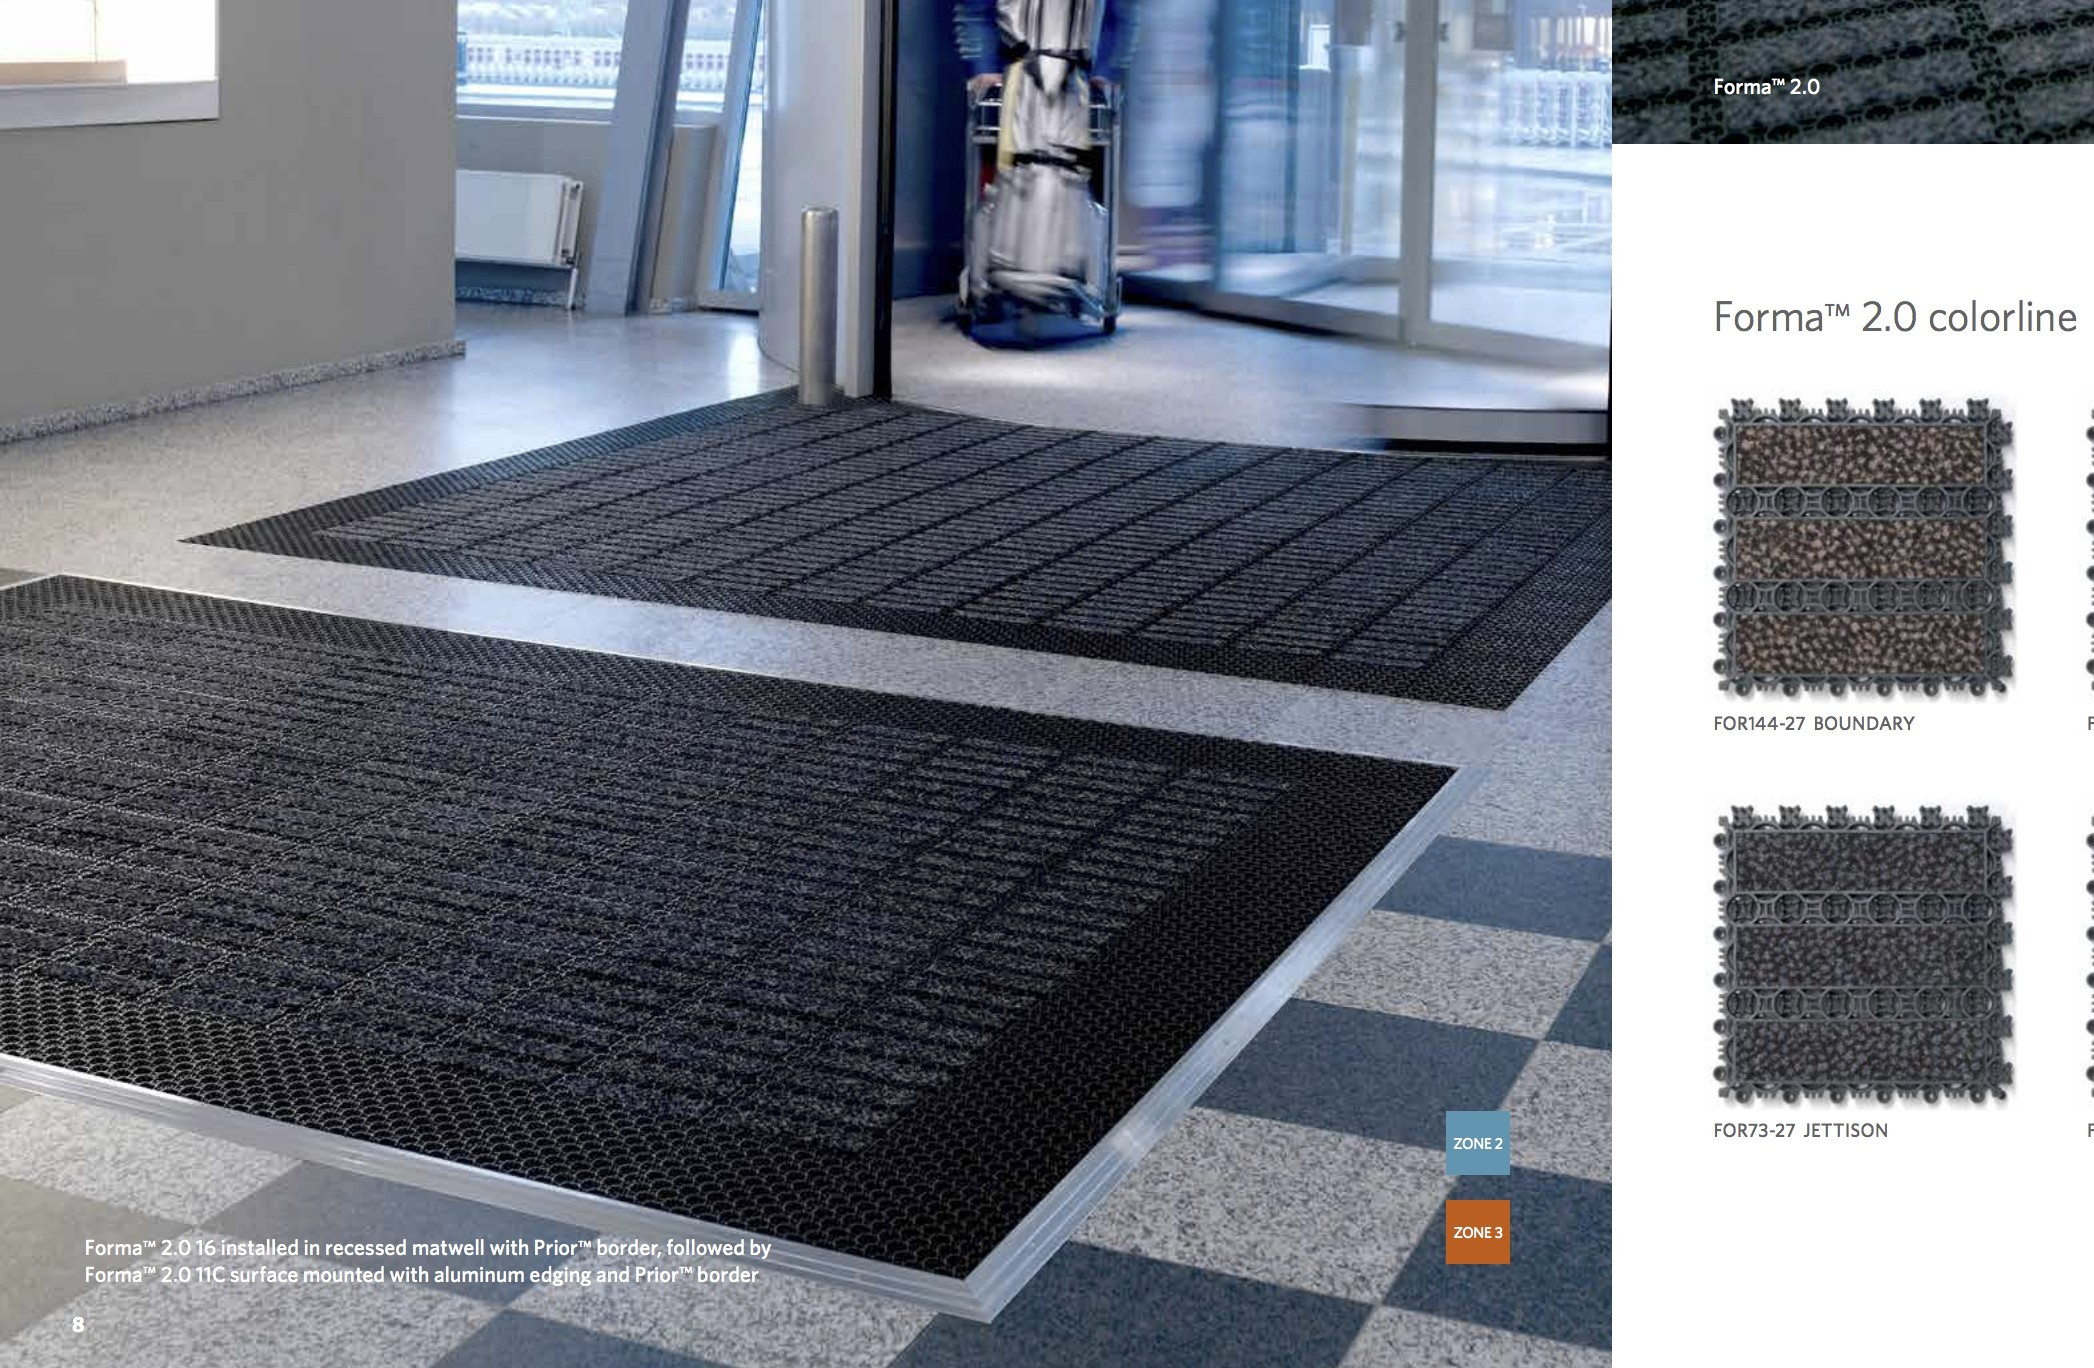 Rubber Entrance Flooring Matts, Prior 11C, Forma 2 0 11c, and 11mm